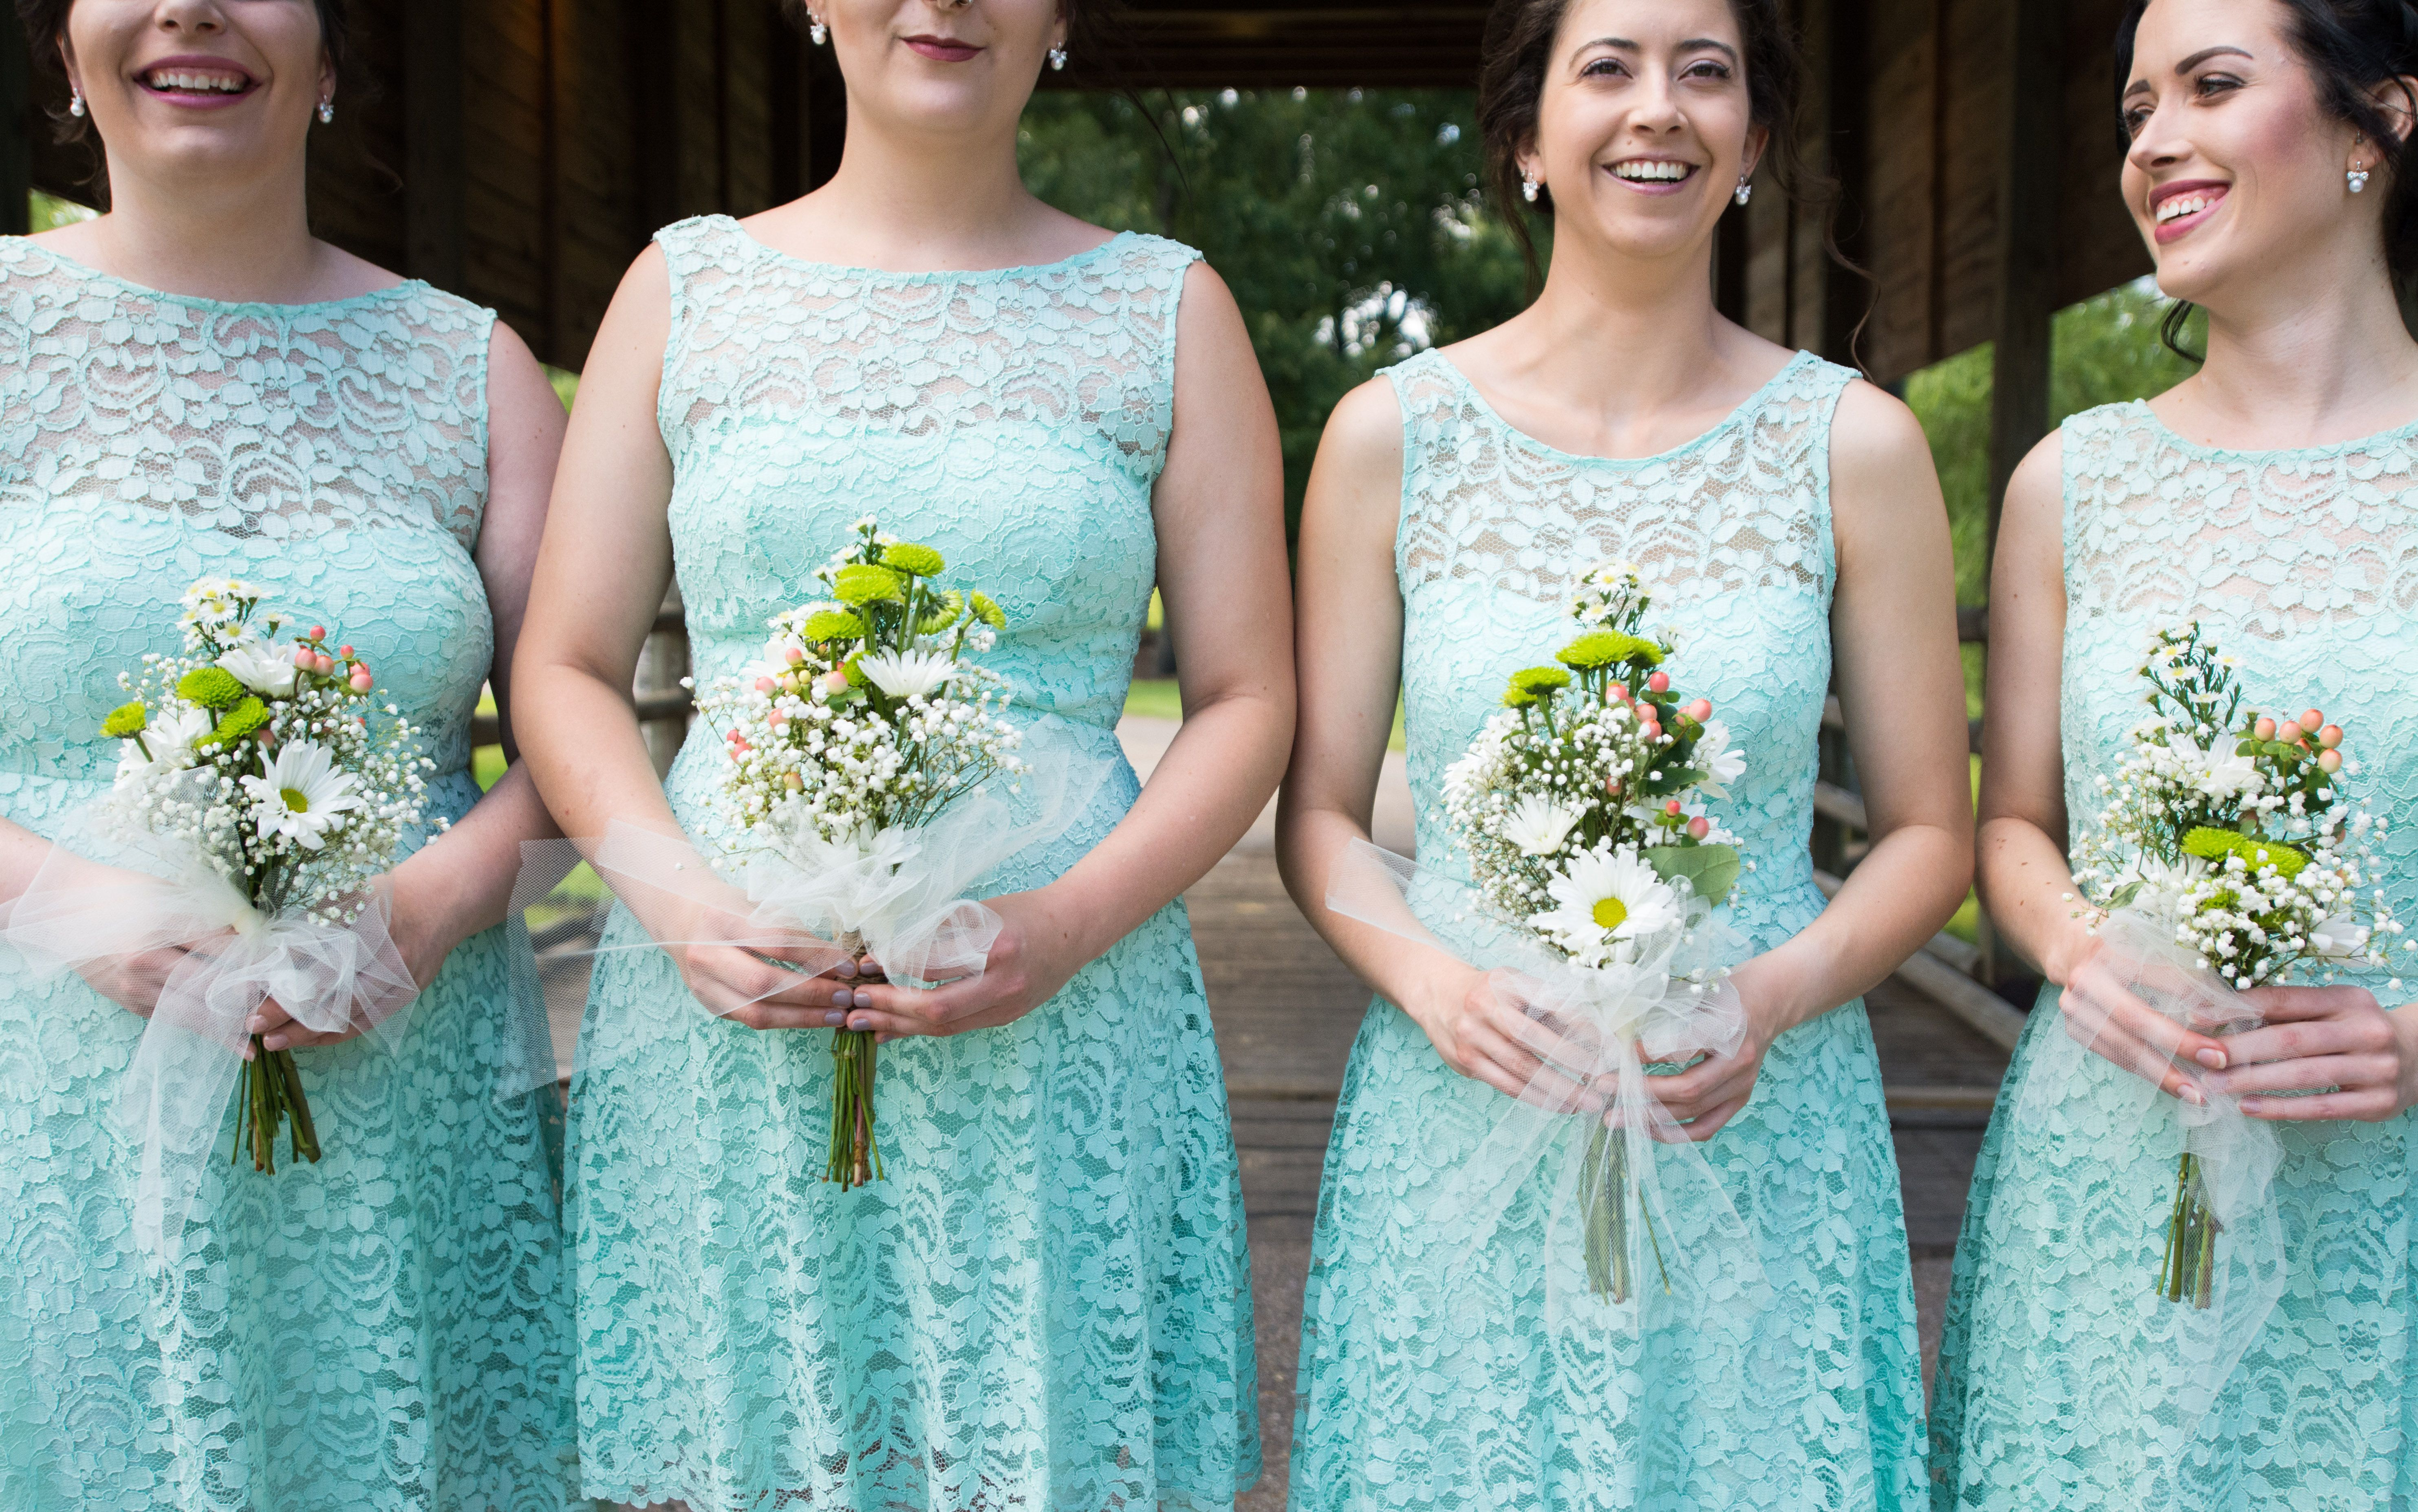 Turquoise lace bridesmaids dresses with wildflowers at Classic Meets ...